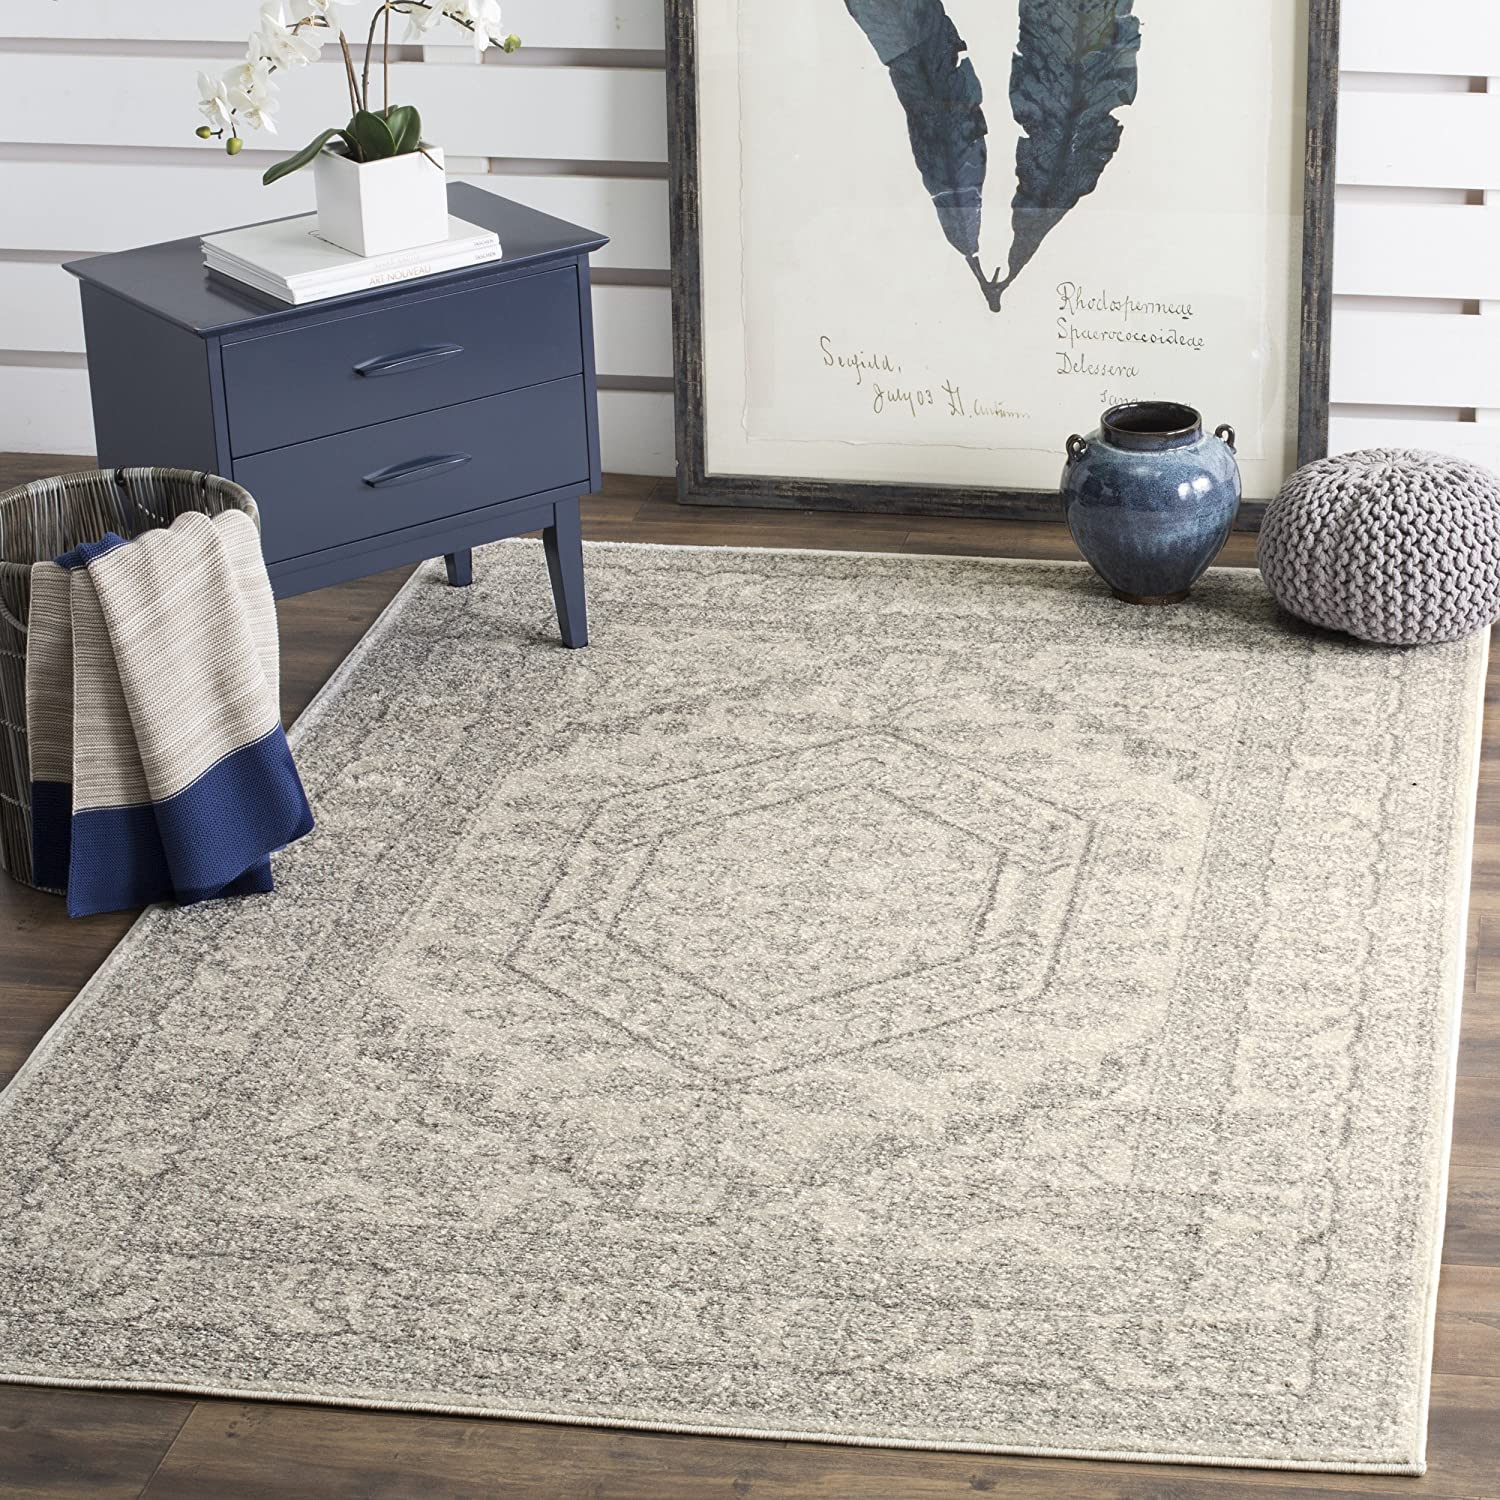 amazoncom safavieh adirondack collection adr108b ivory and silver oriental vintage area rug 8u0027 x 10u0027 kitchen u0026 dining - Safavieh Rug